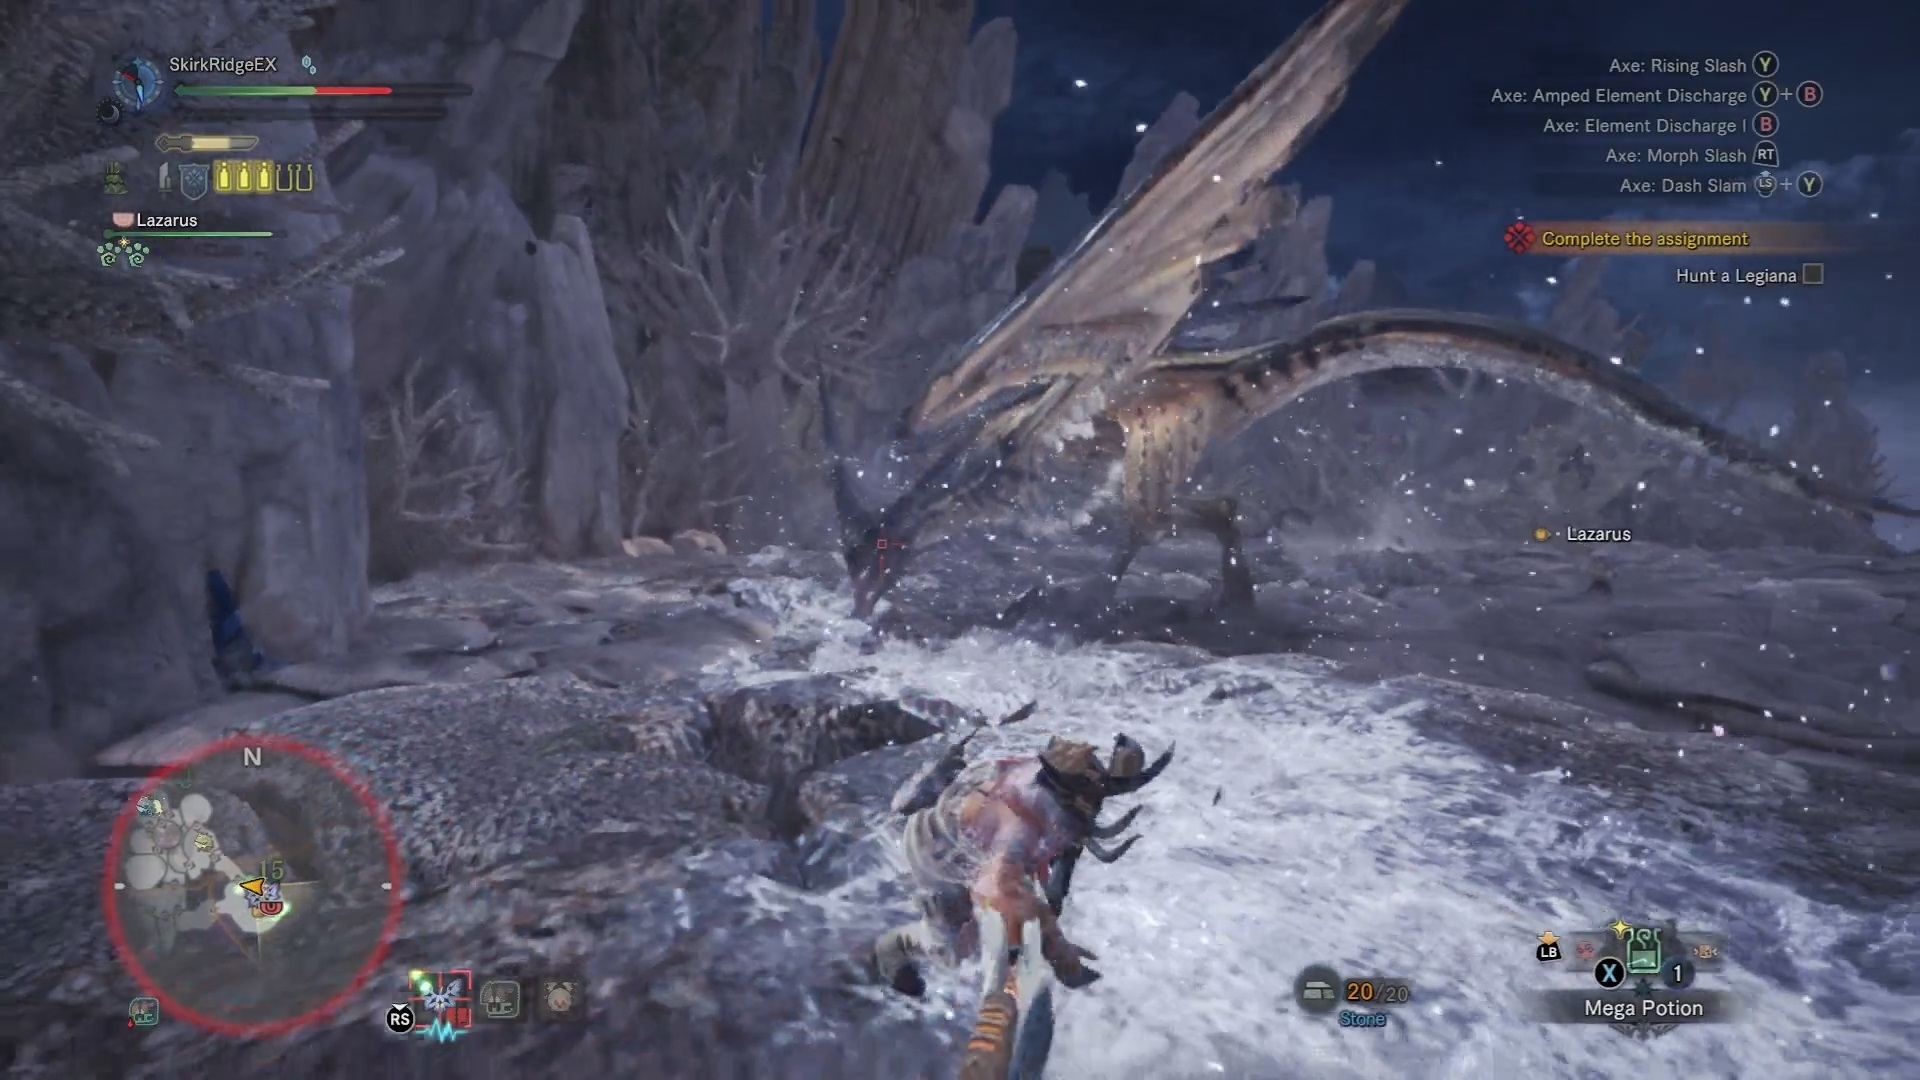 Legiana has frozen part of the area and player is affected by Iceblight.